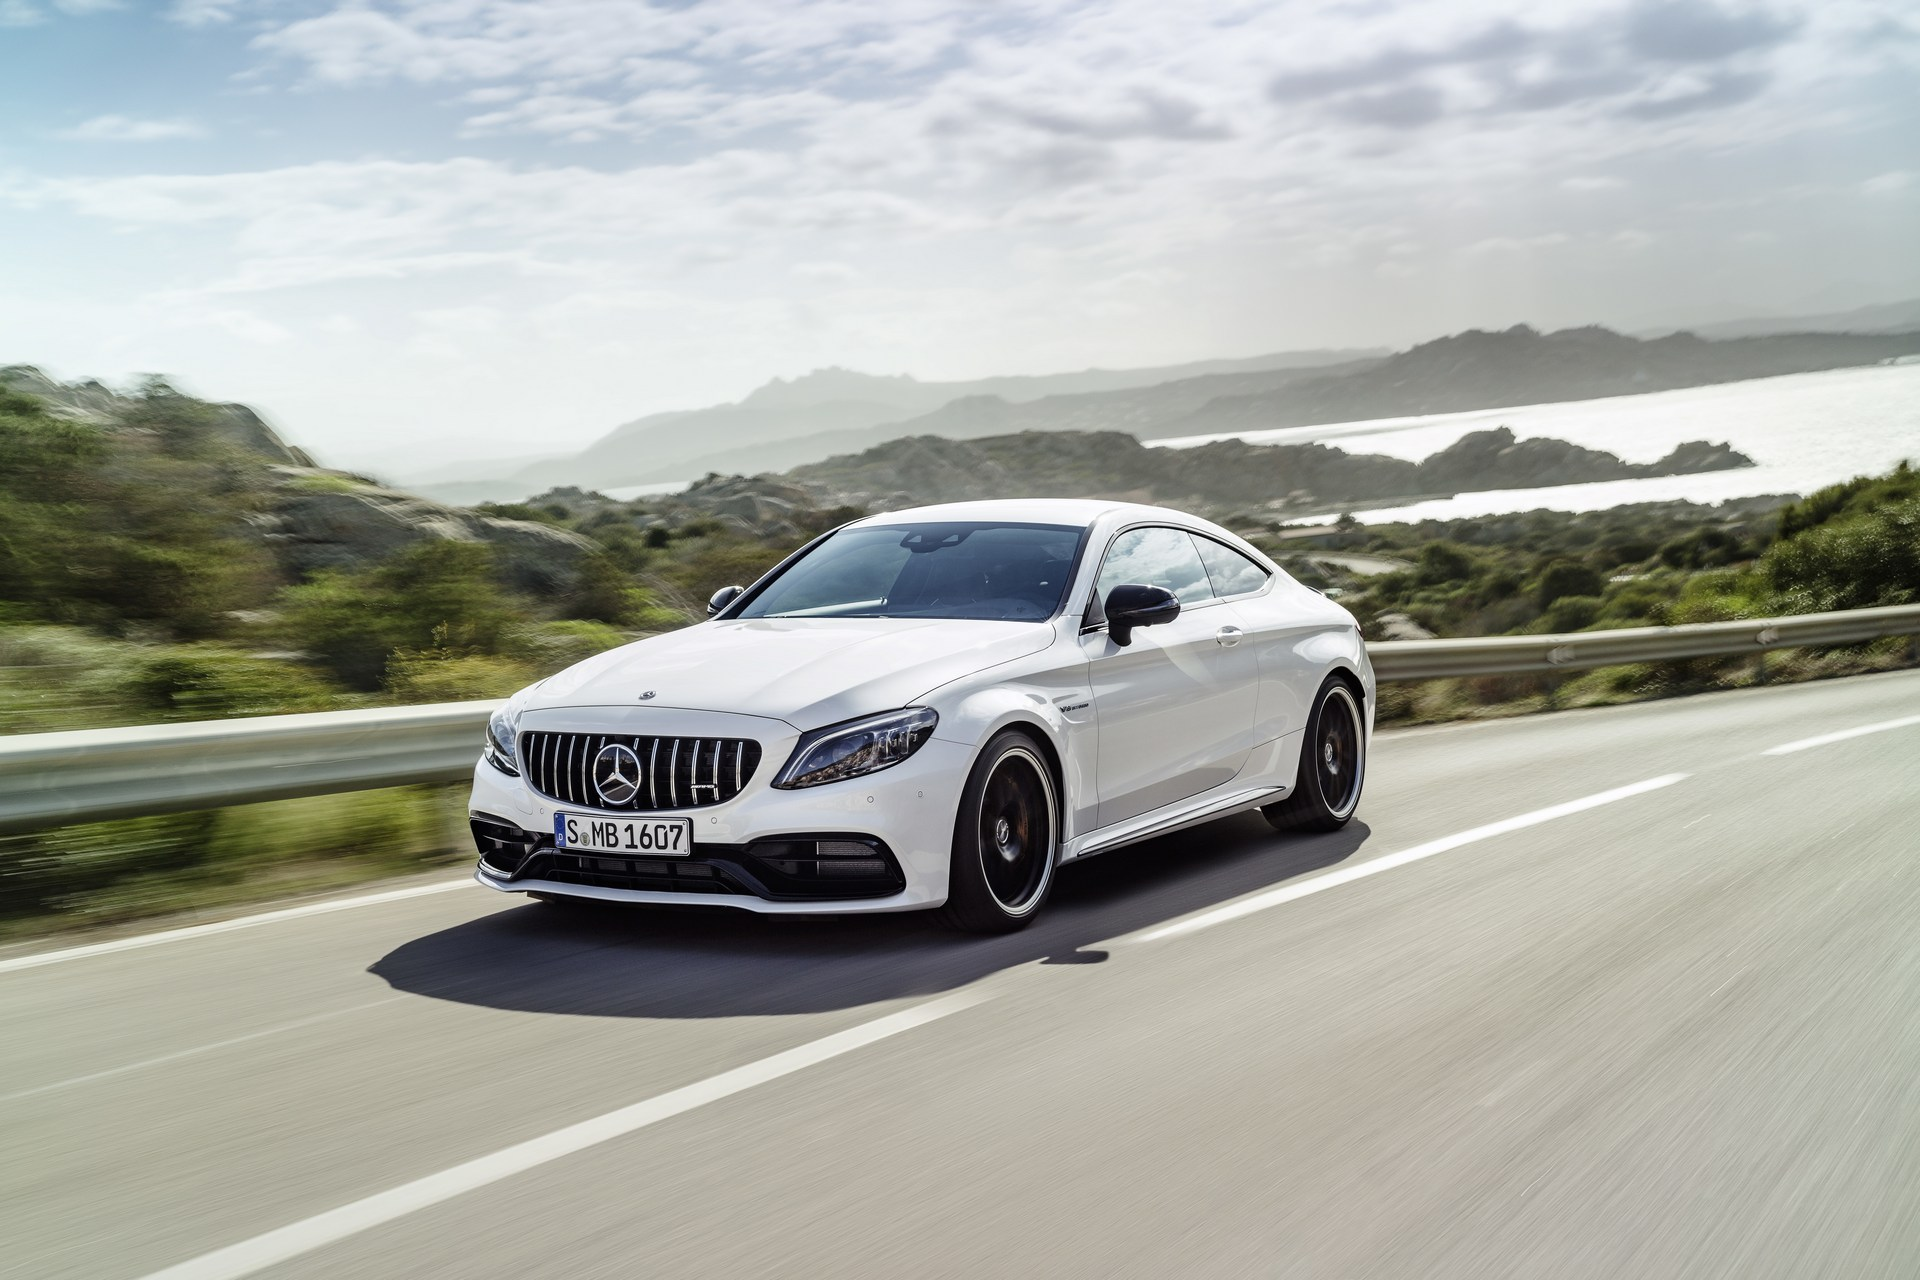 future-mercedes-amg-c63-will-be-hybrid-4matic-awd-also-considered_4.jpg